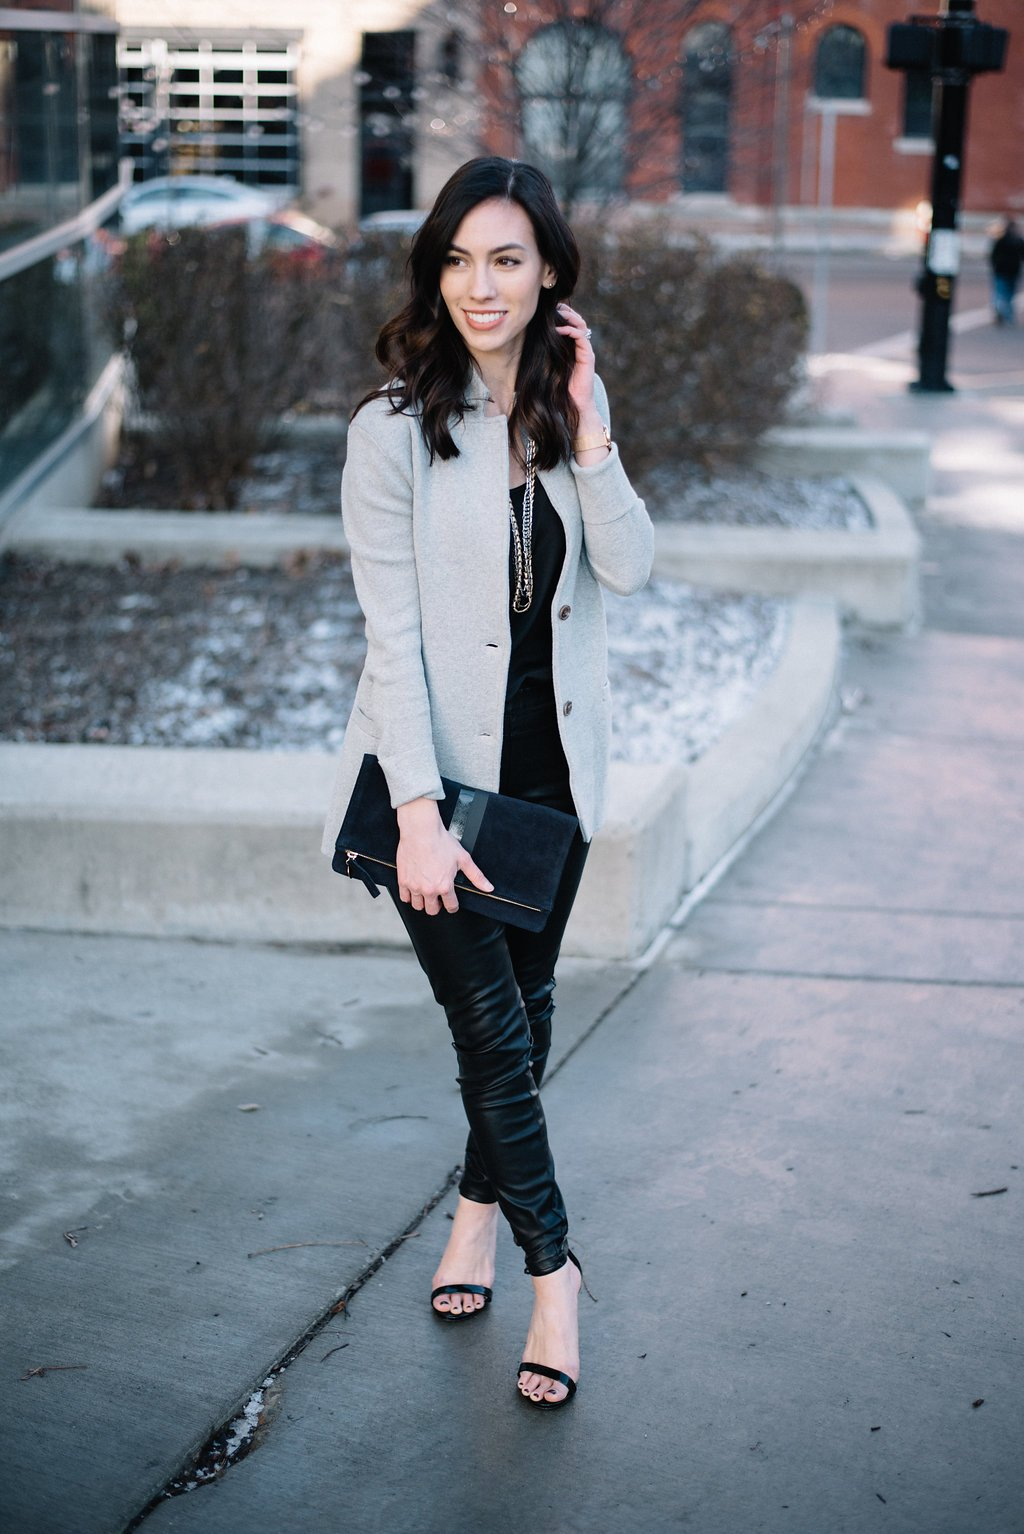 jcrew sweater blazer-@wellesleynking-wellesley and king | How to style a sweater blazer featured by top Pittsburgh fashion blog, Wellesley & King: image of a woman wearing Clare V clutch, J Crew Factory camisole, Stella & Dot necklace, J Crew blazer, Blank NYC leather pants and Steve Madden heels